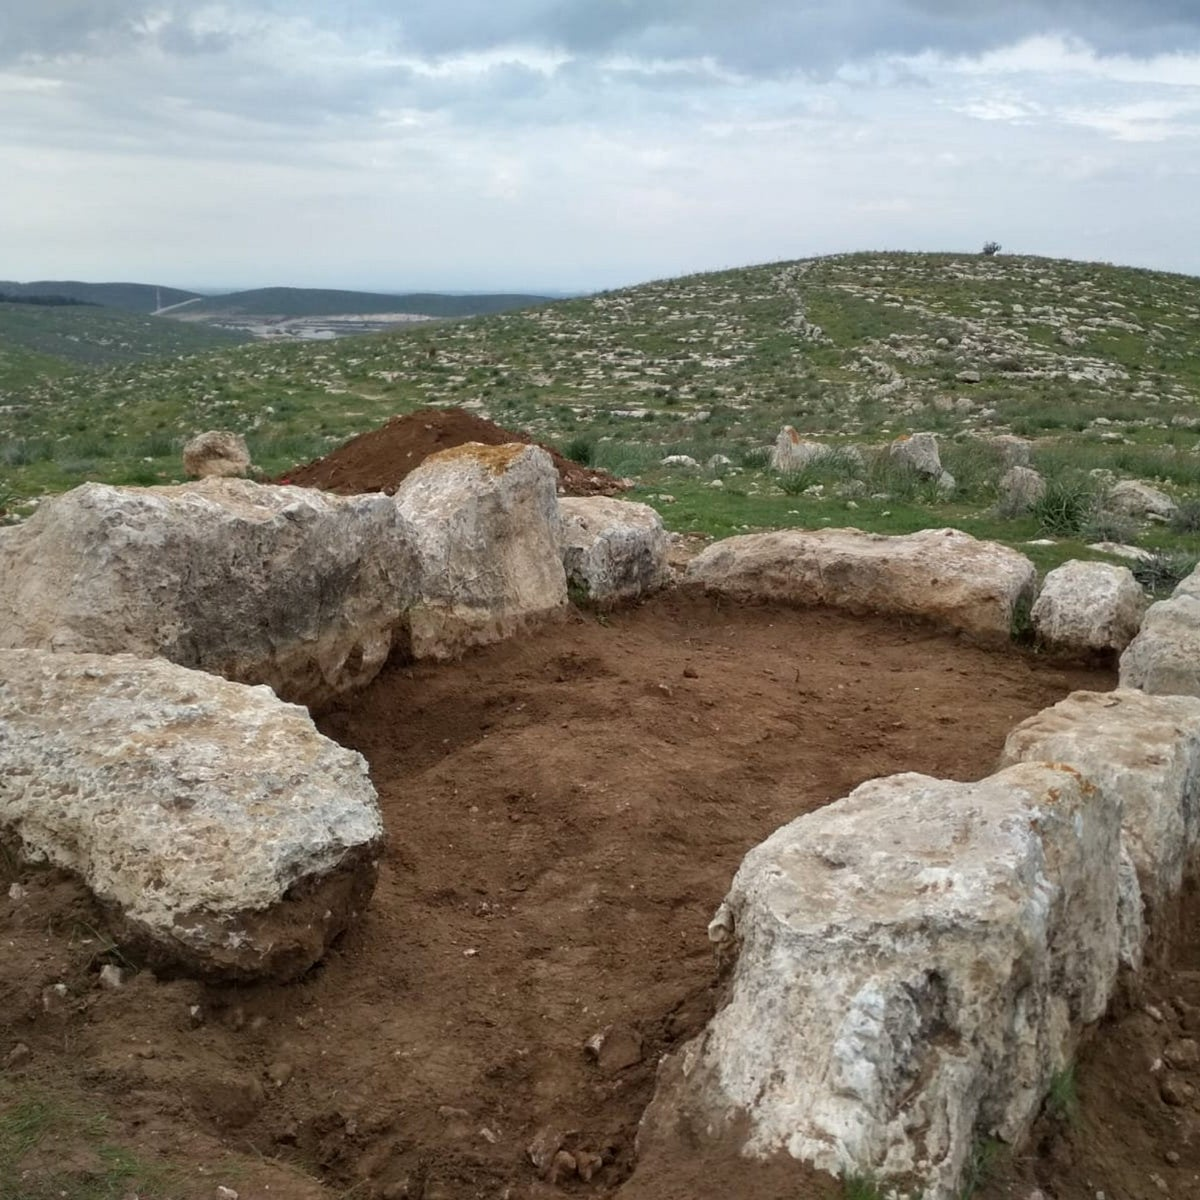 Base of 2,800-year old watchtower that probably stood 2 stories high